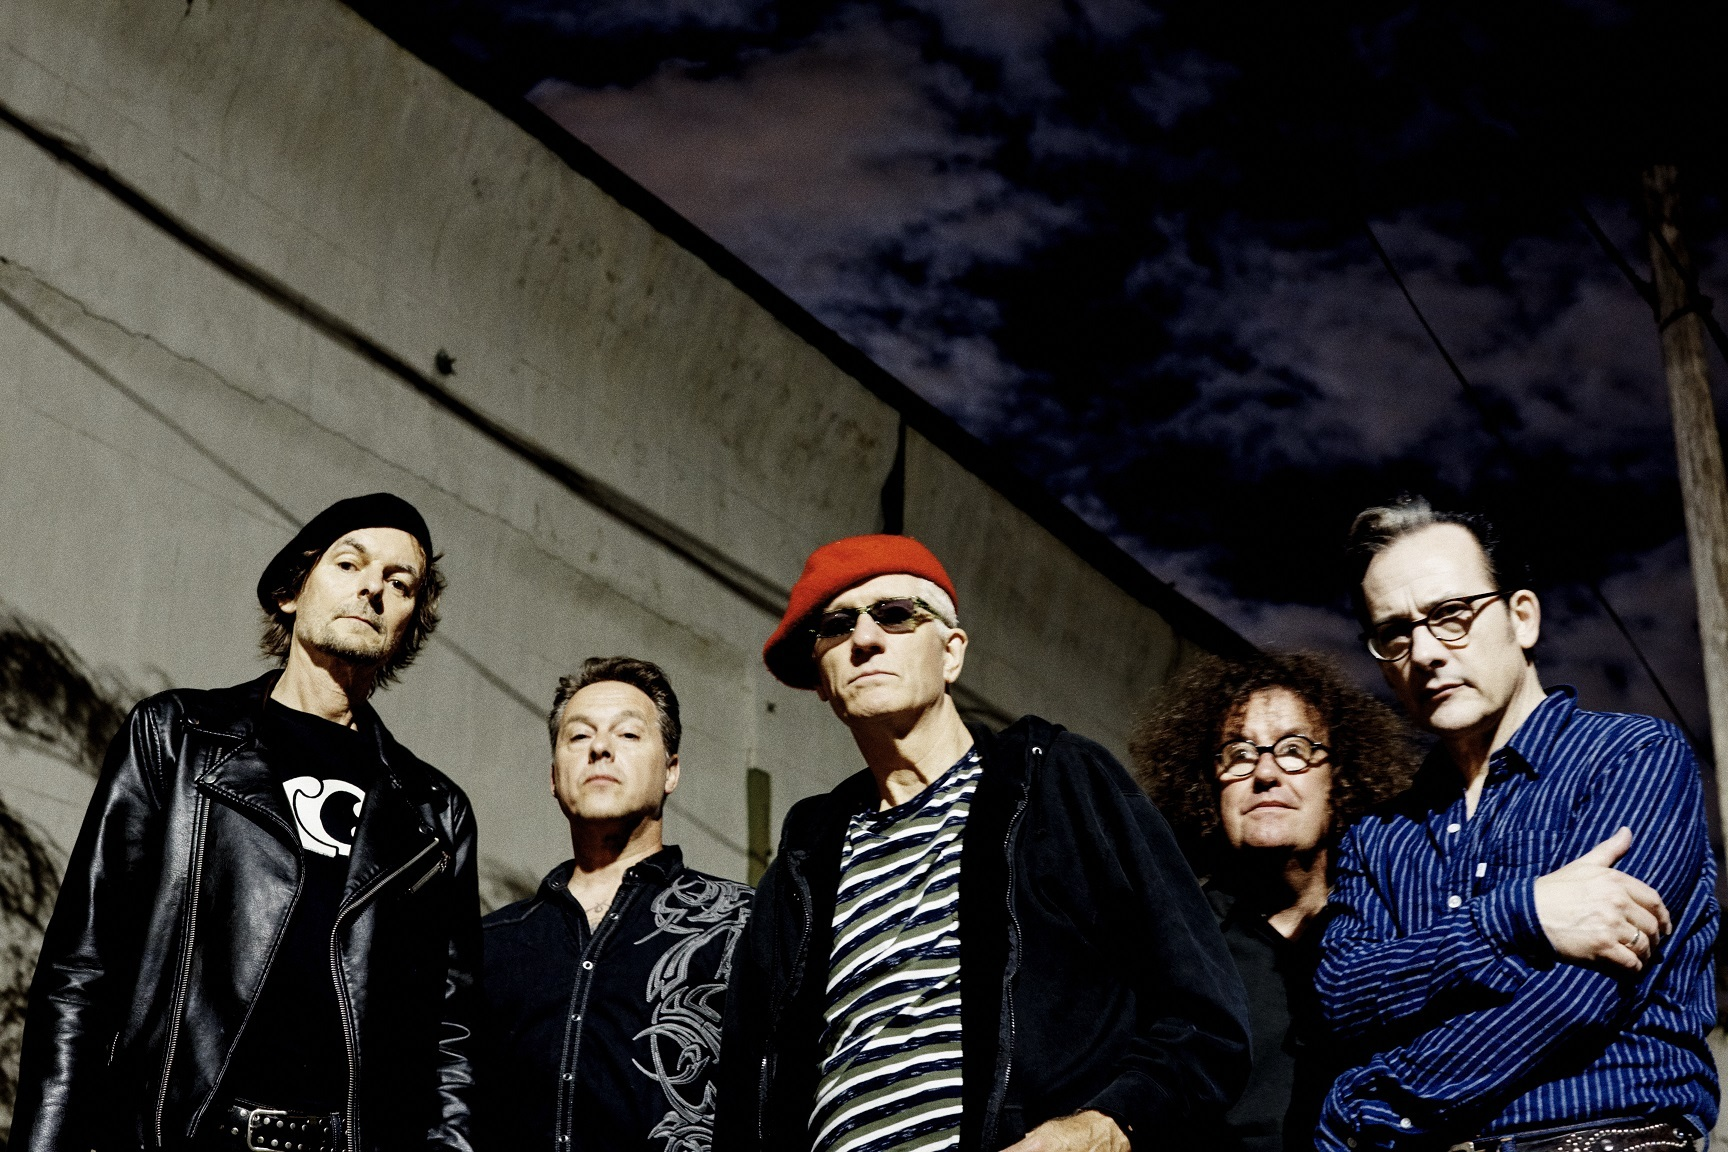 Evil spirits: The Damned. Picture by Steve Gullick